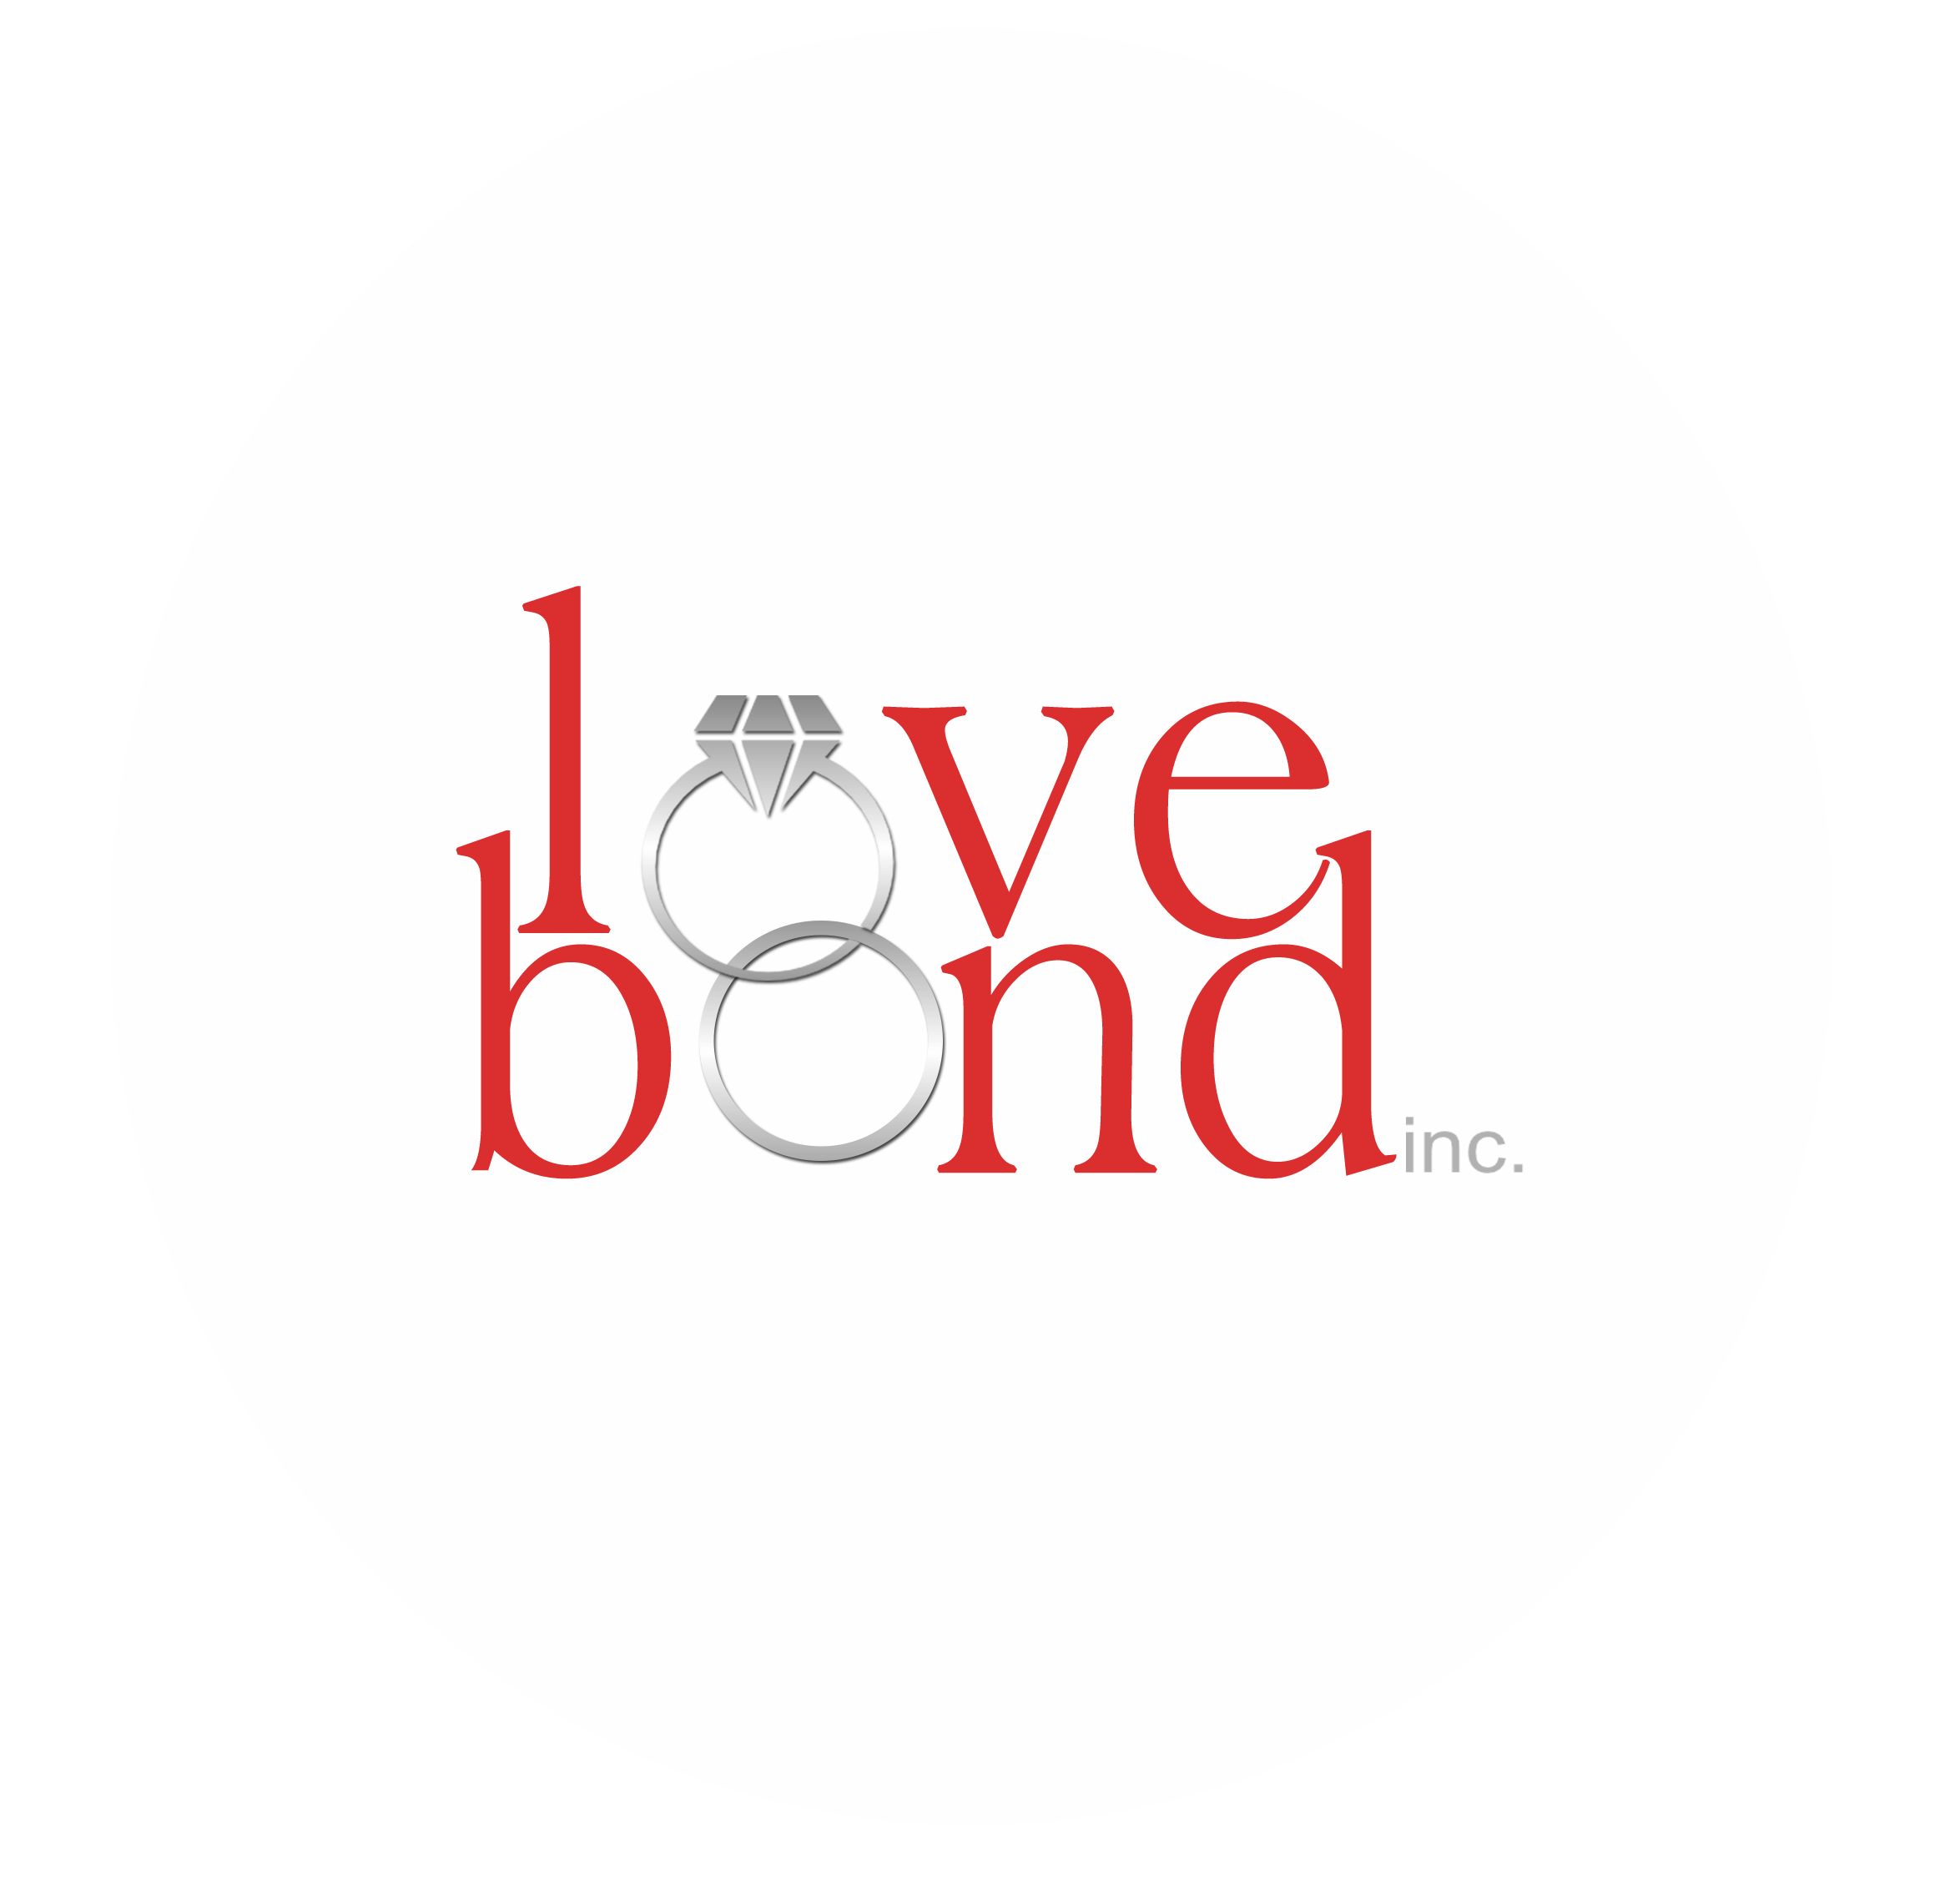 LOVE BOND INC.